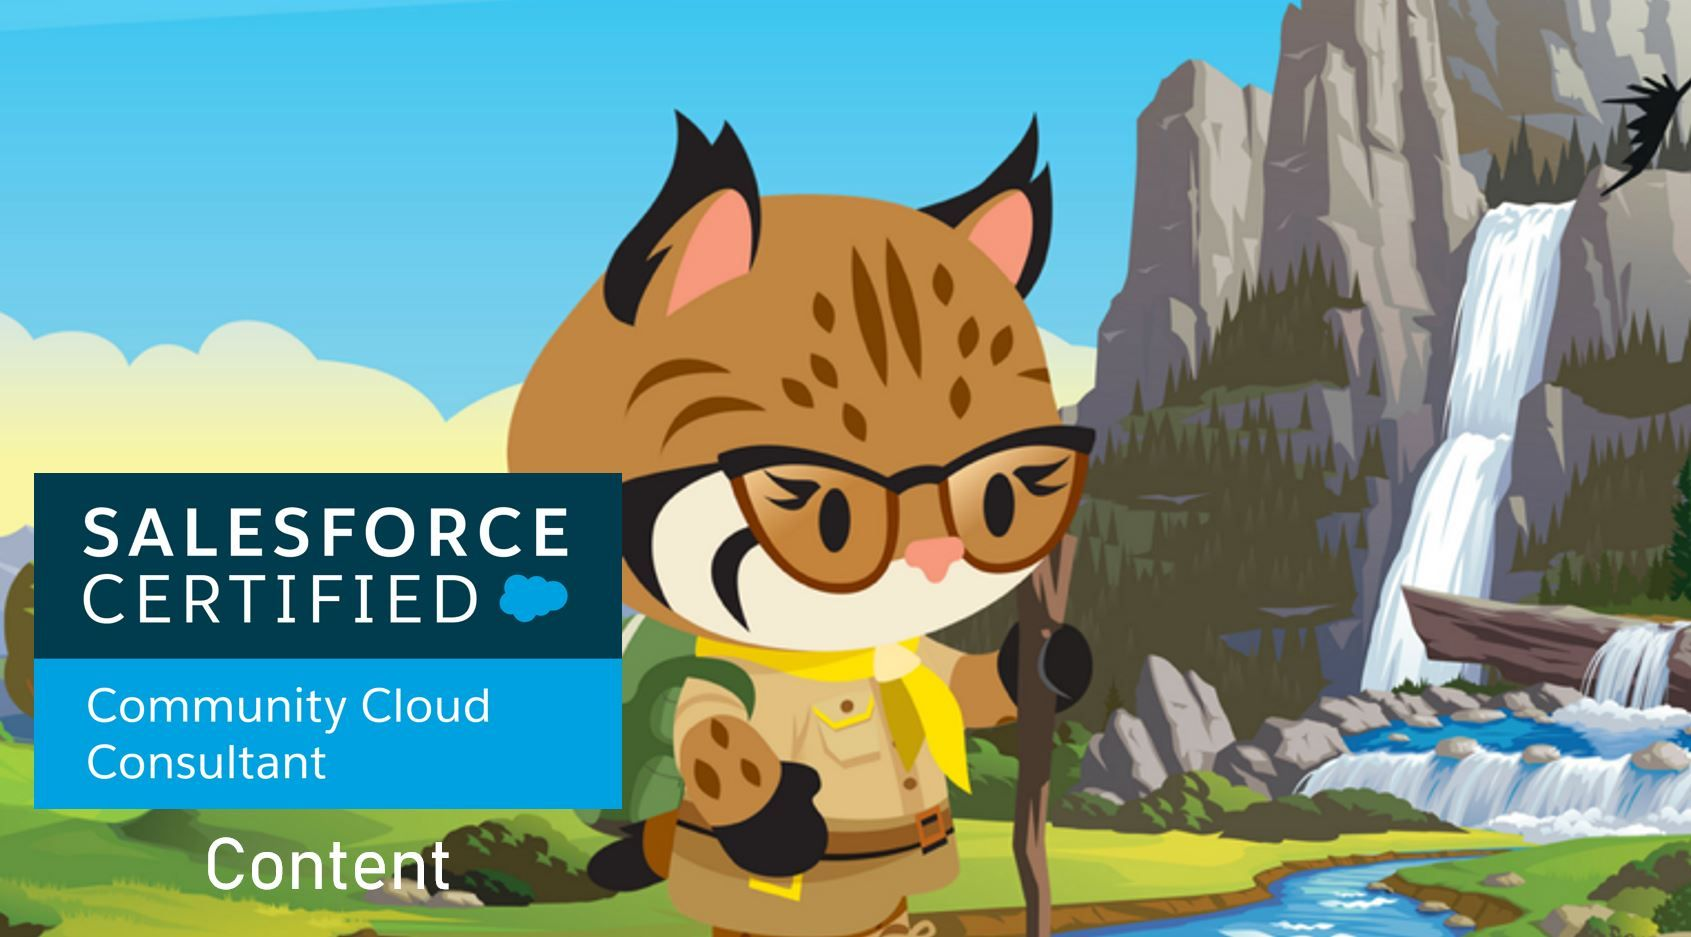 Salesforce Community Cloud Consultant Exam Preparation: Content